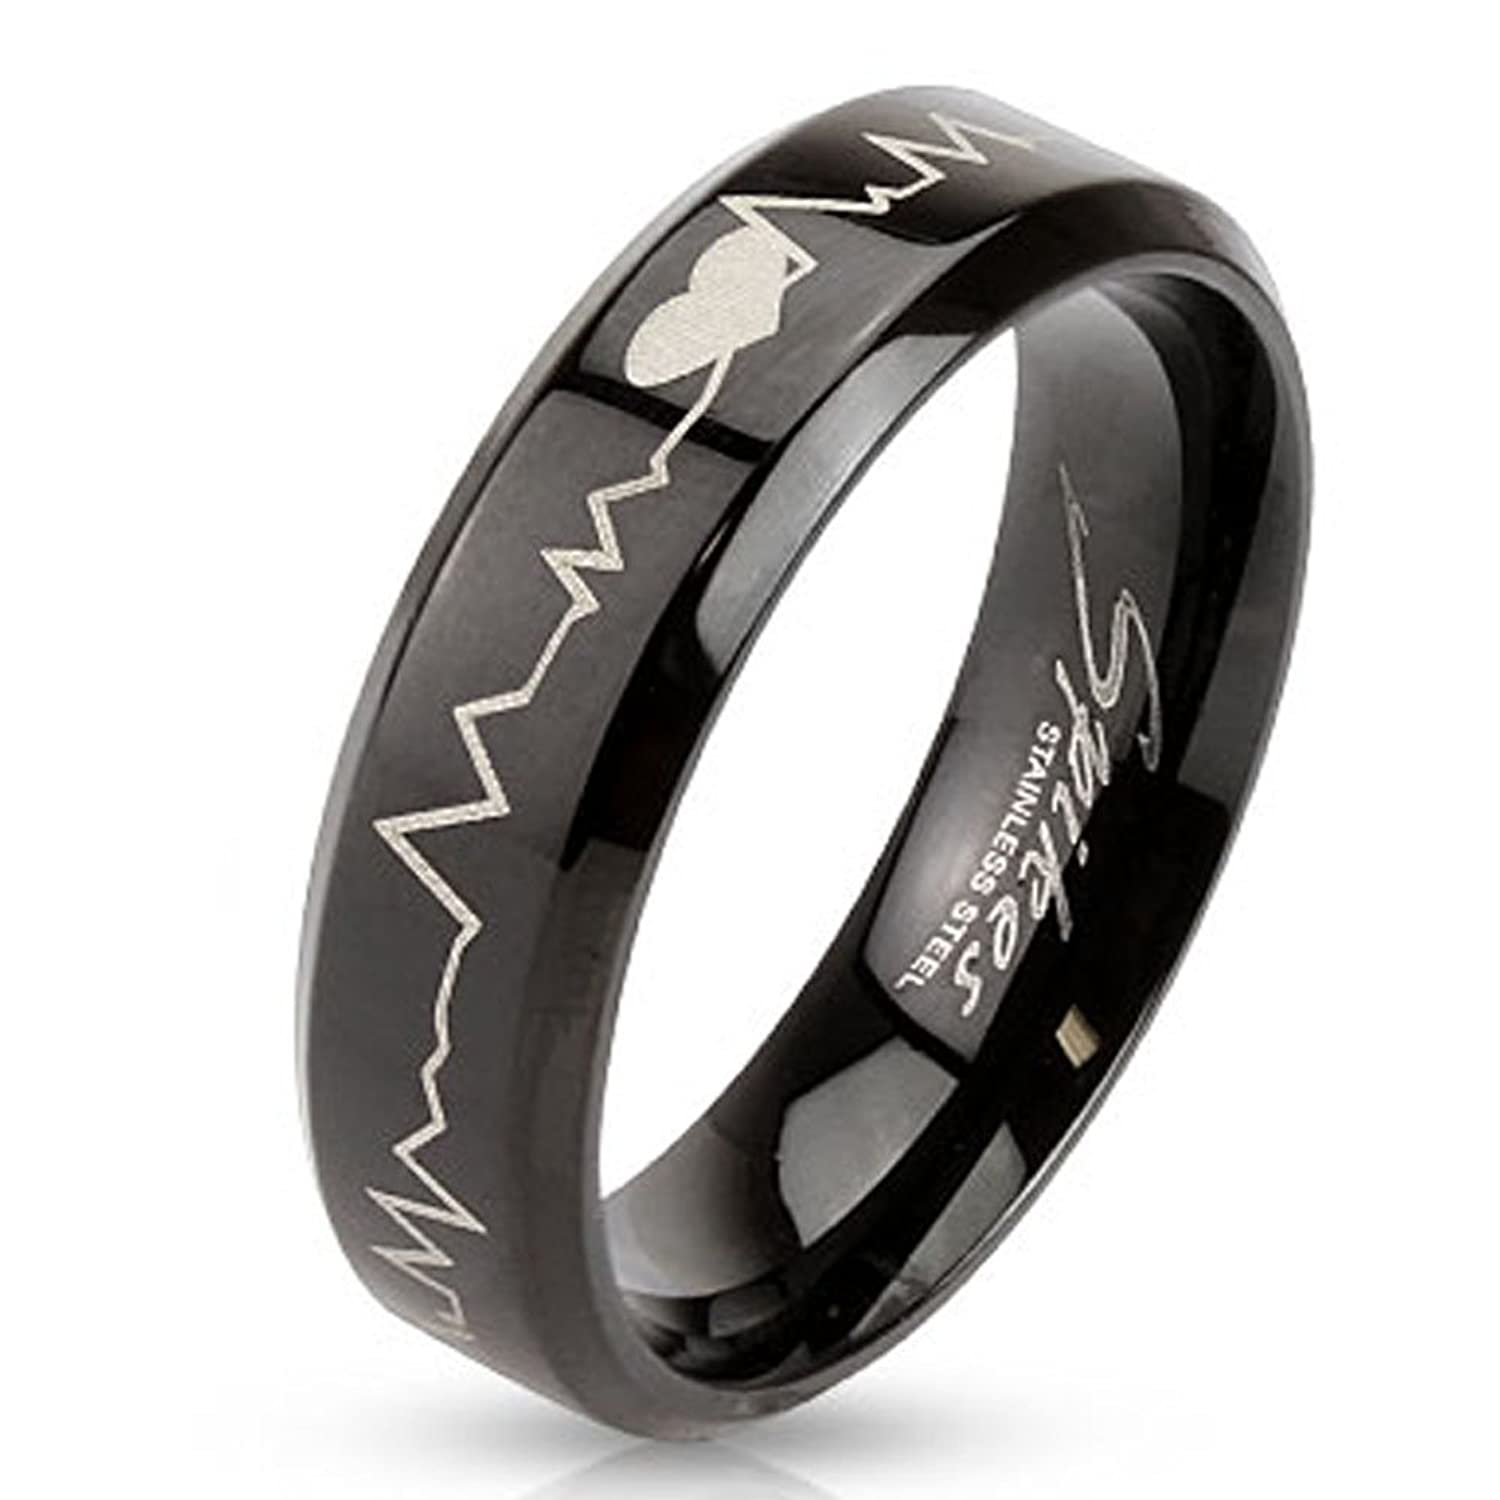 STR-0123 Stainless Steel Black IP with Heartbeat Laser Etched Band Ring